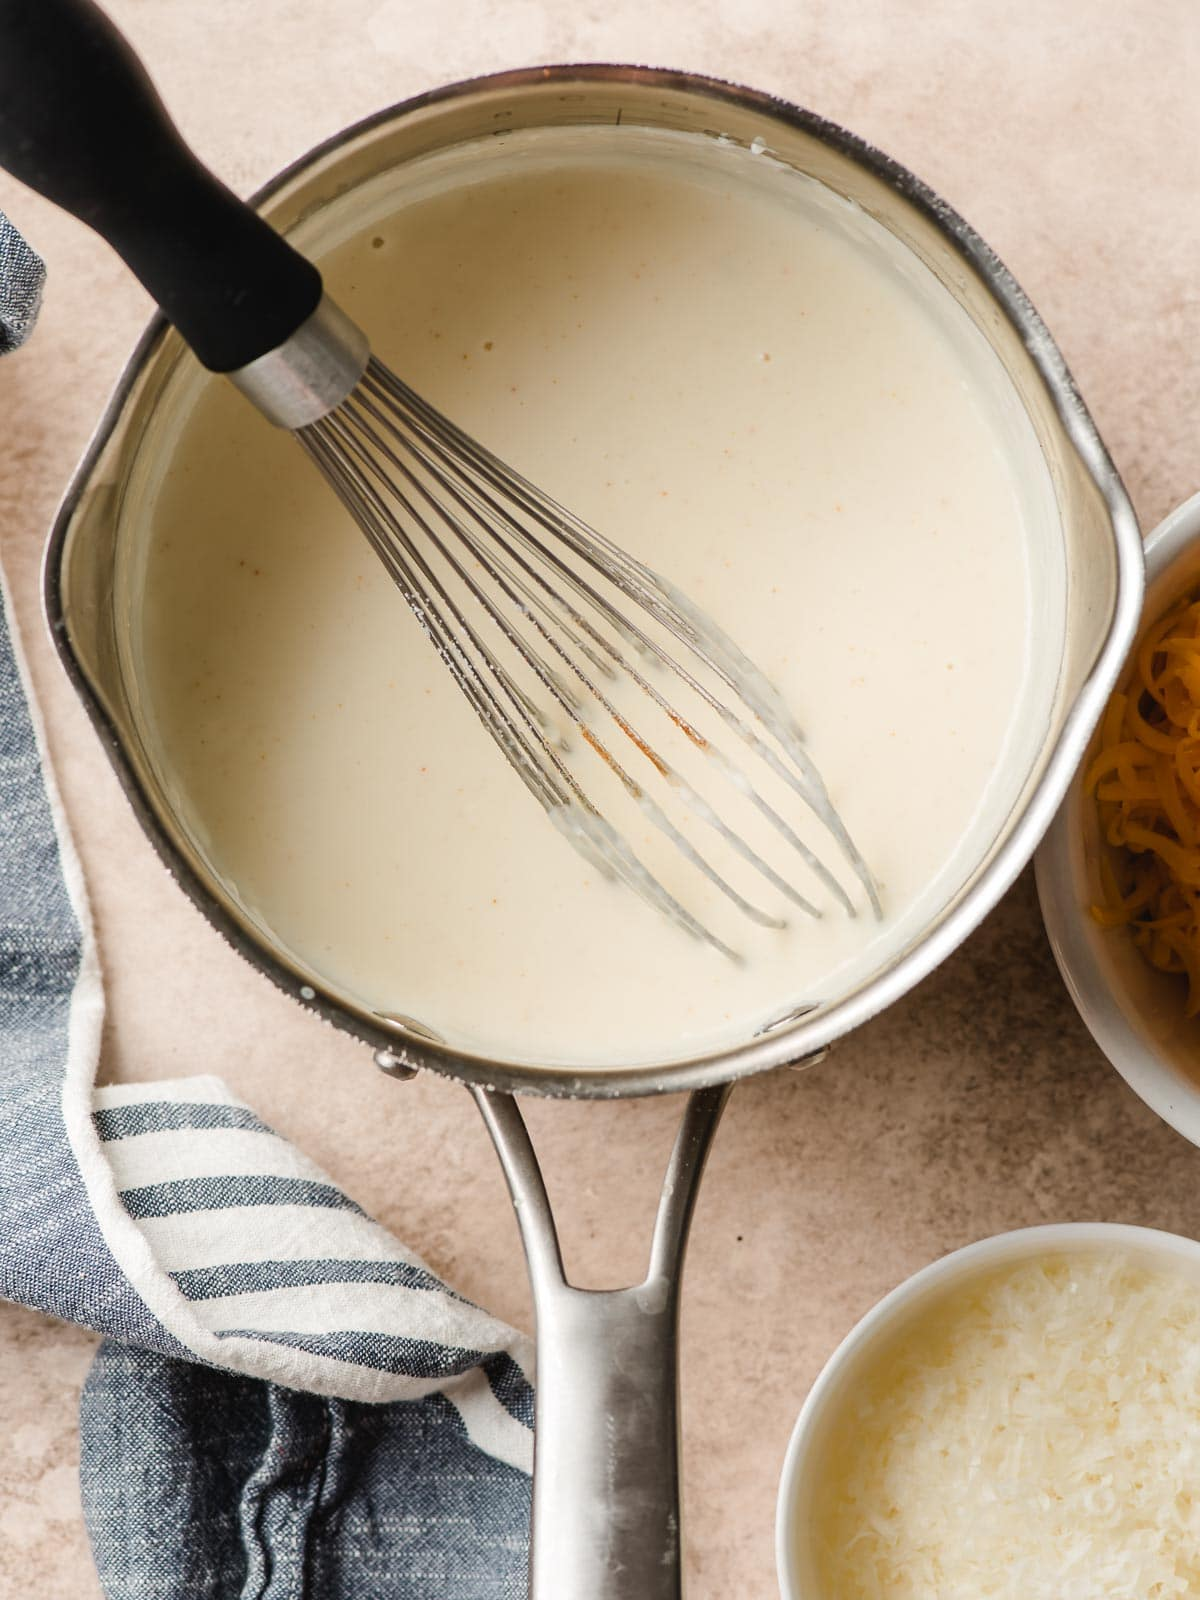 Bechamel sauce in a silver pot with a whisk propped inside.